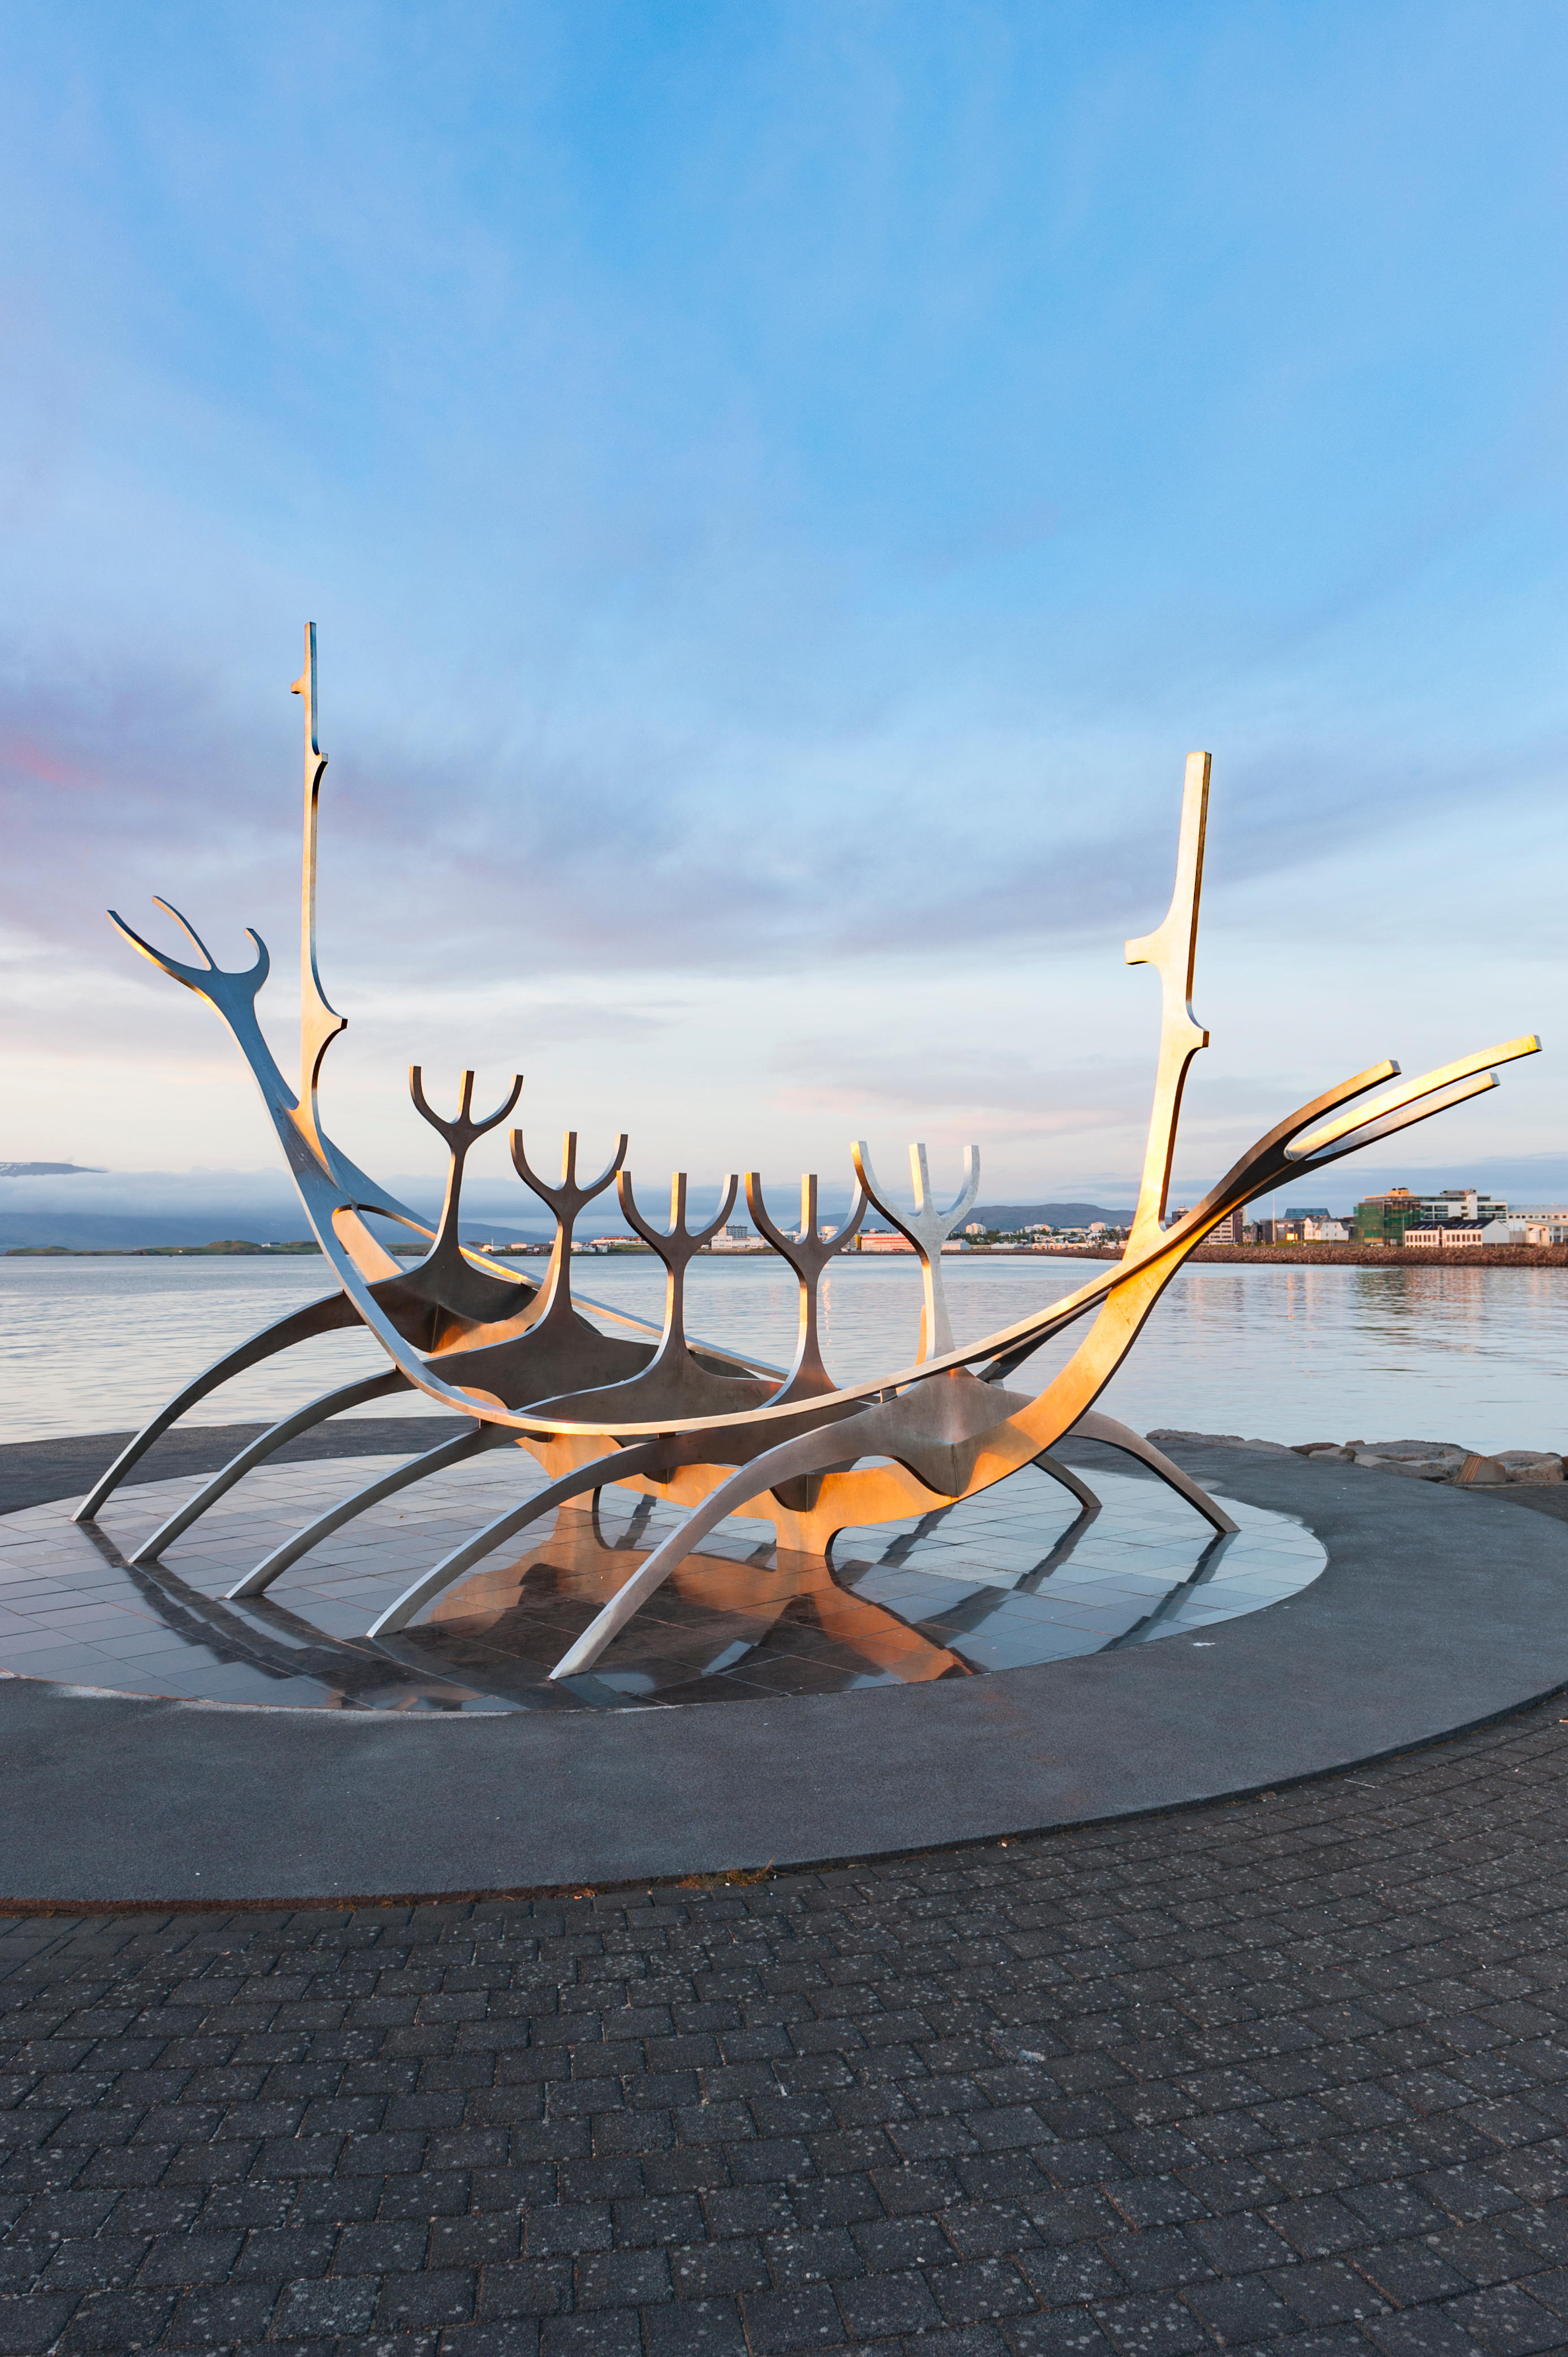 Sun Voyager (Solfar), a Viking ship metal sculpture by artist Jon Gunnar Arnason, at the shore of Reykjavik, Iceland, built as an ode to the sun.